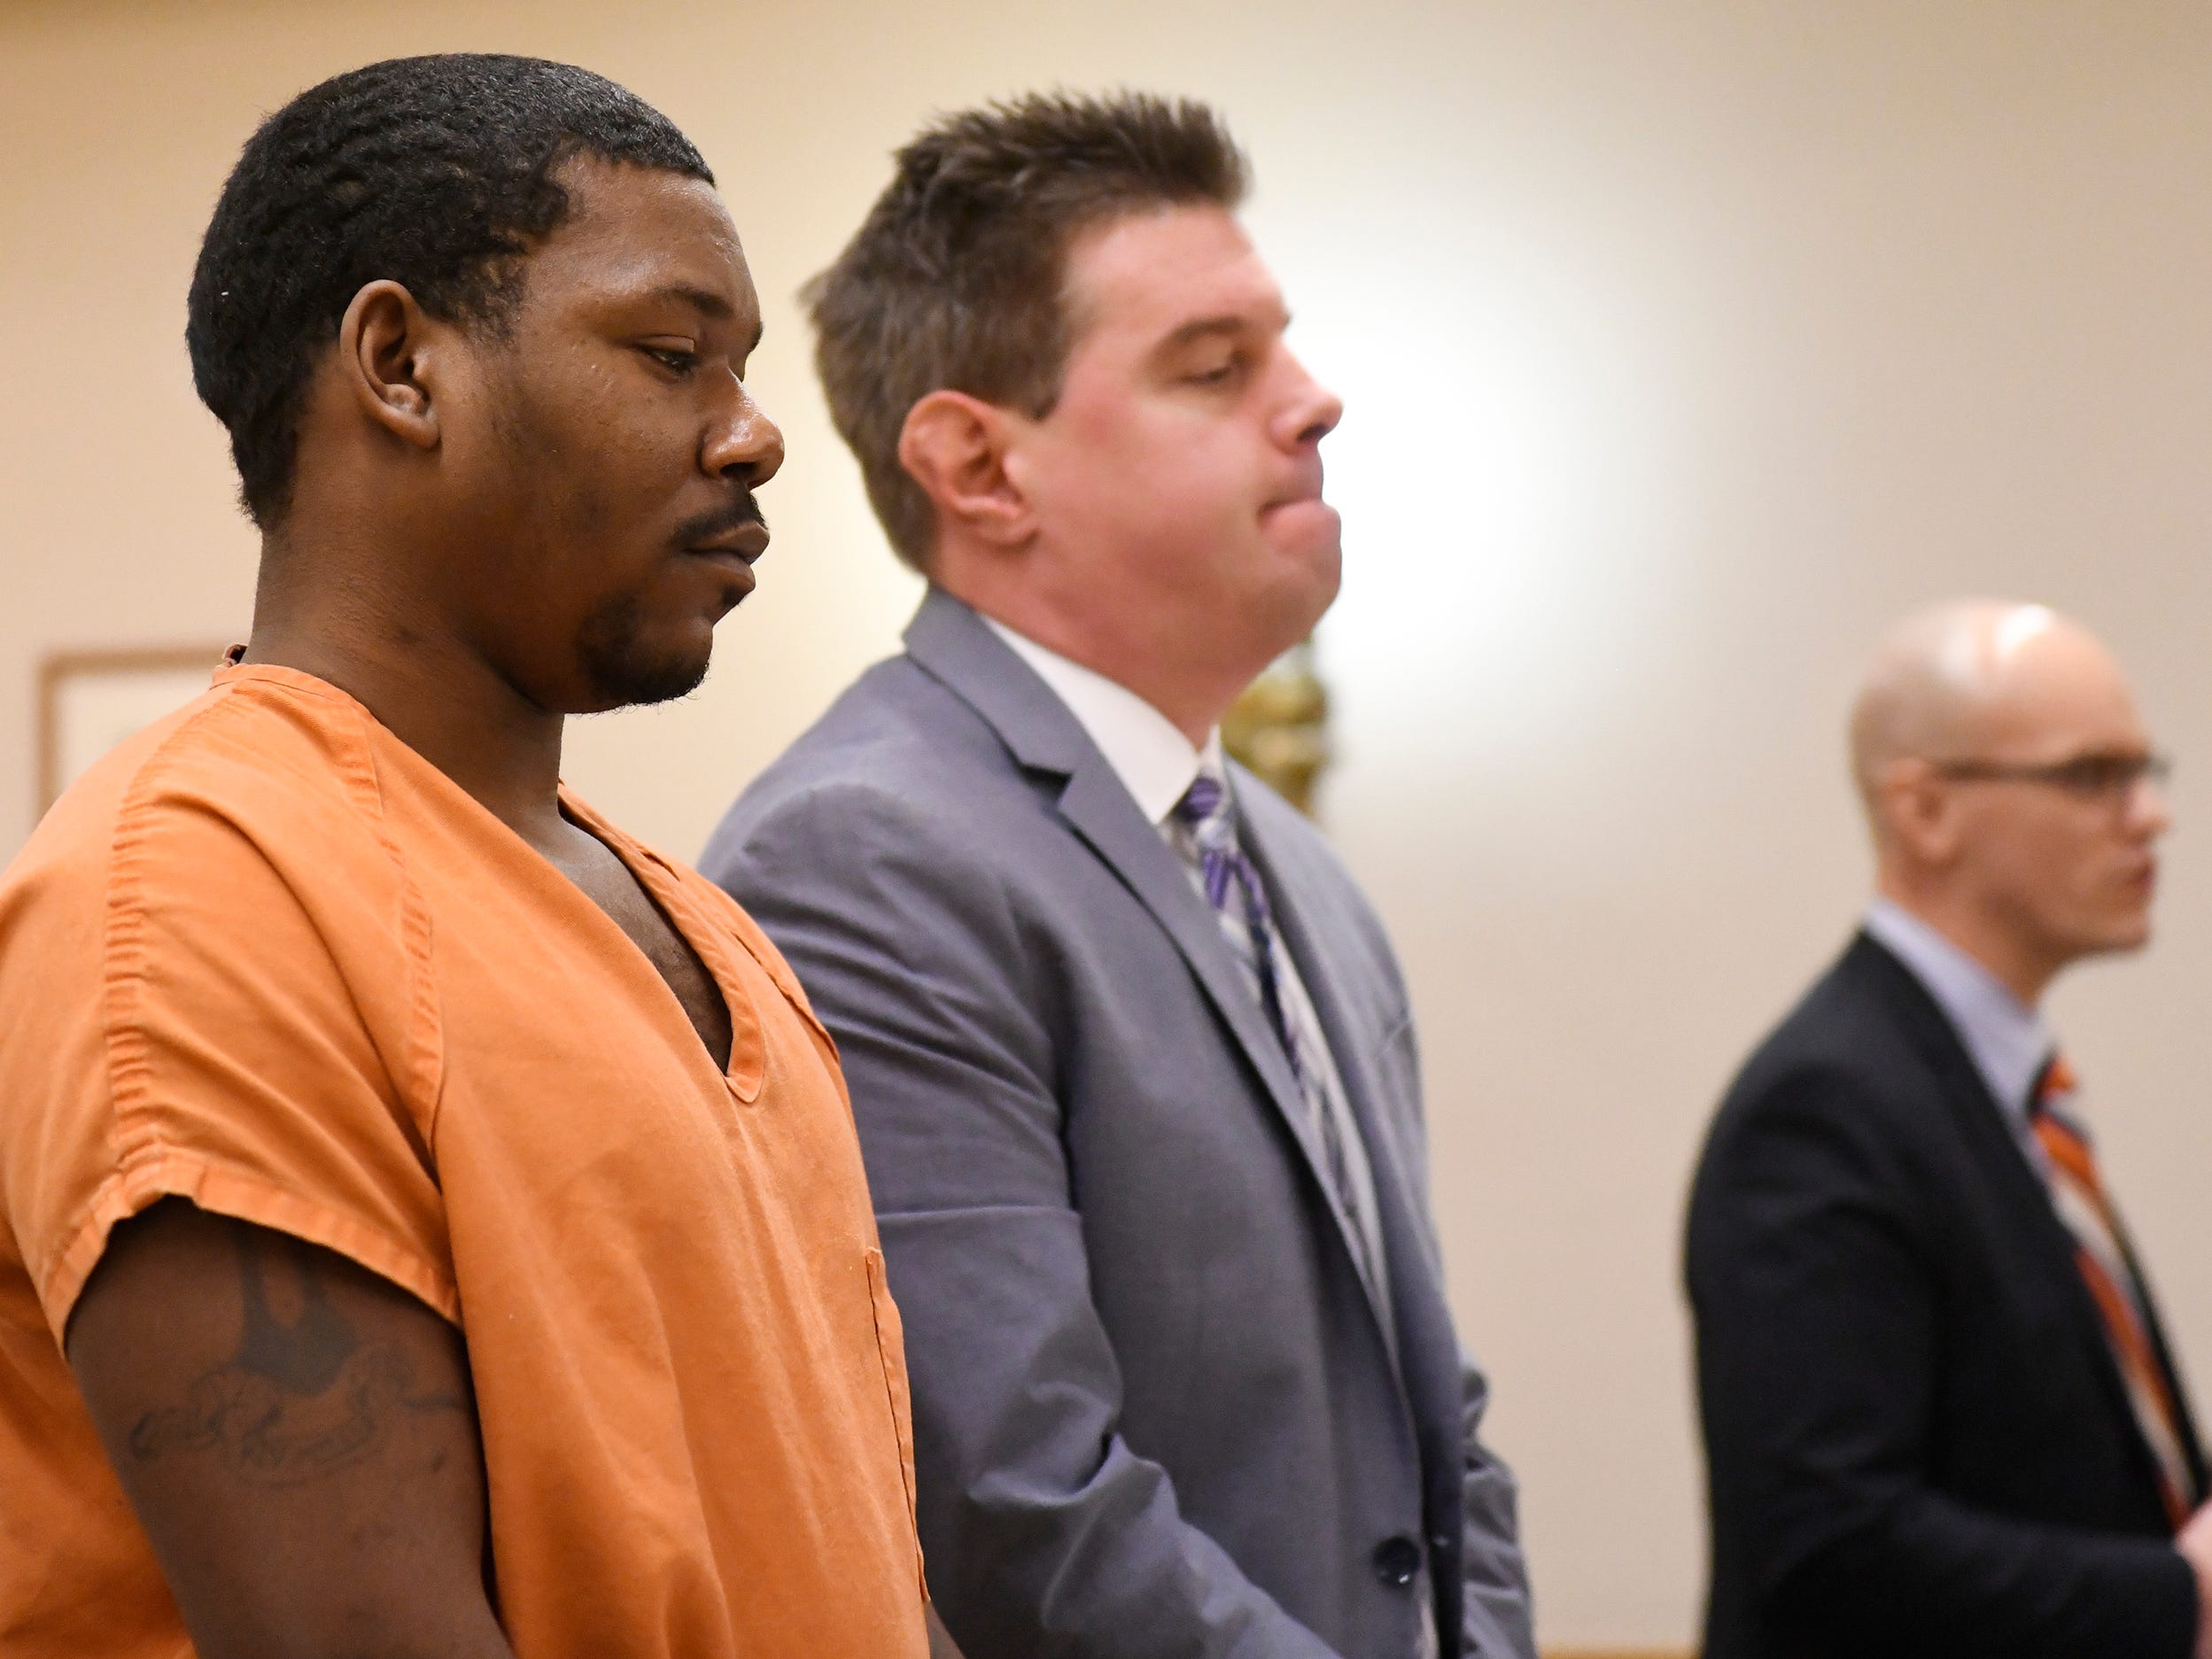 Clifton D. Bailey, left, stands with his attorney, Patrick Joyce, in Cumberland County Superior Court on Monday, March 4, 2019. Bailey is charged with homicide in the killing of Joseph Jones behind Lakeside Middle School in Millville.